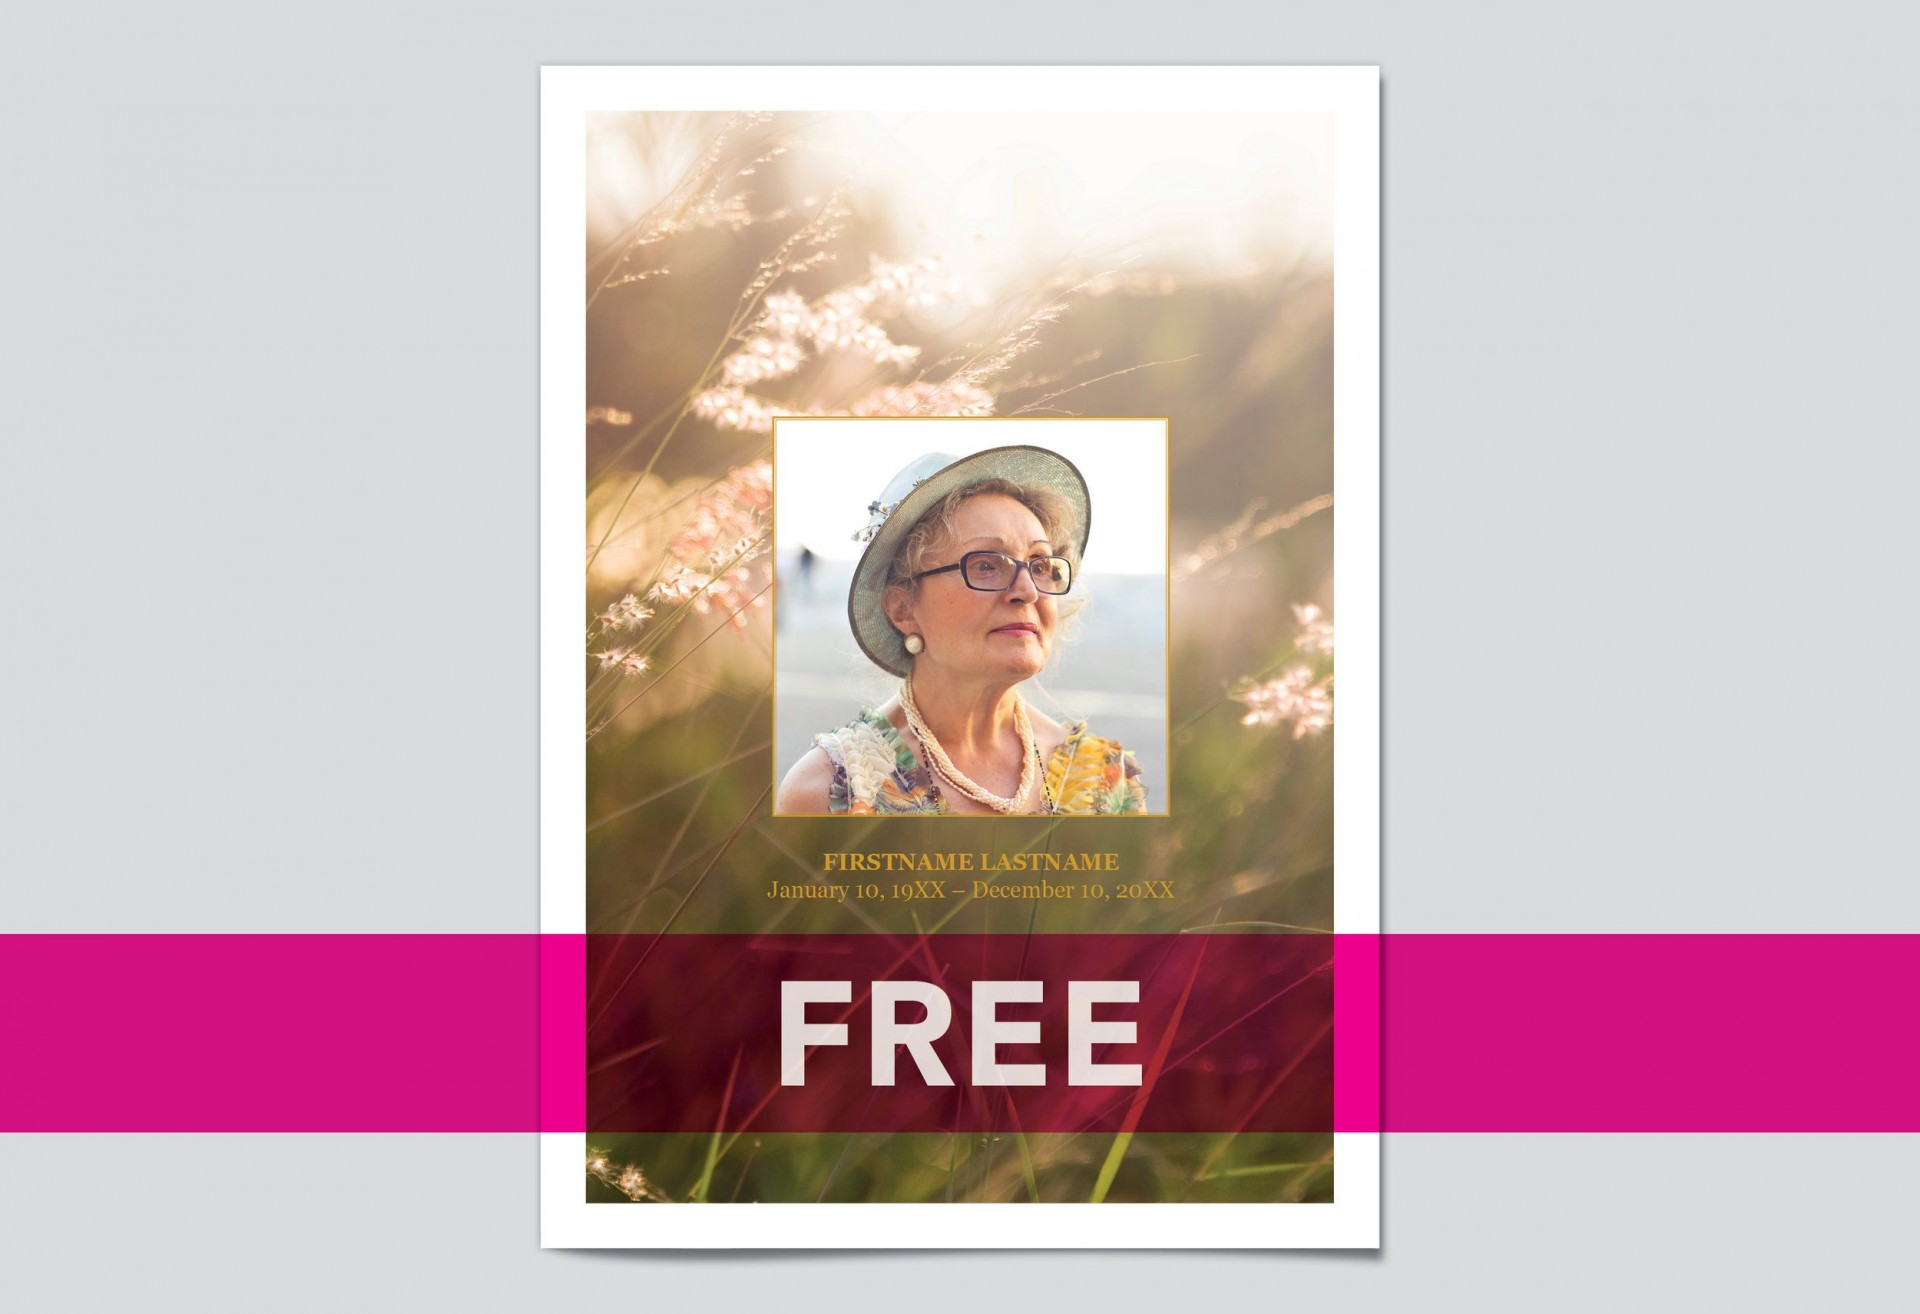 009 Impressive Free Editable Celebration Of Life Program Template Idea 1920